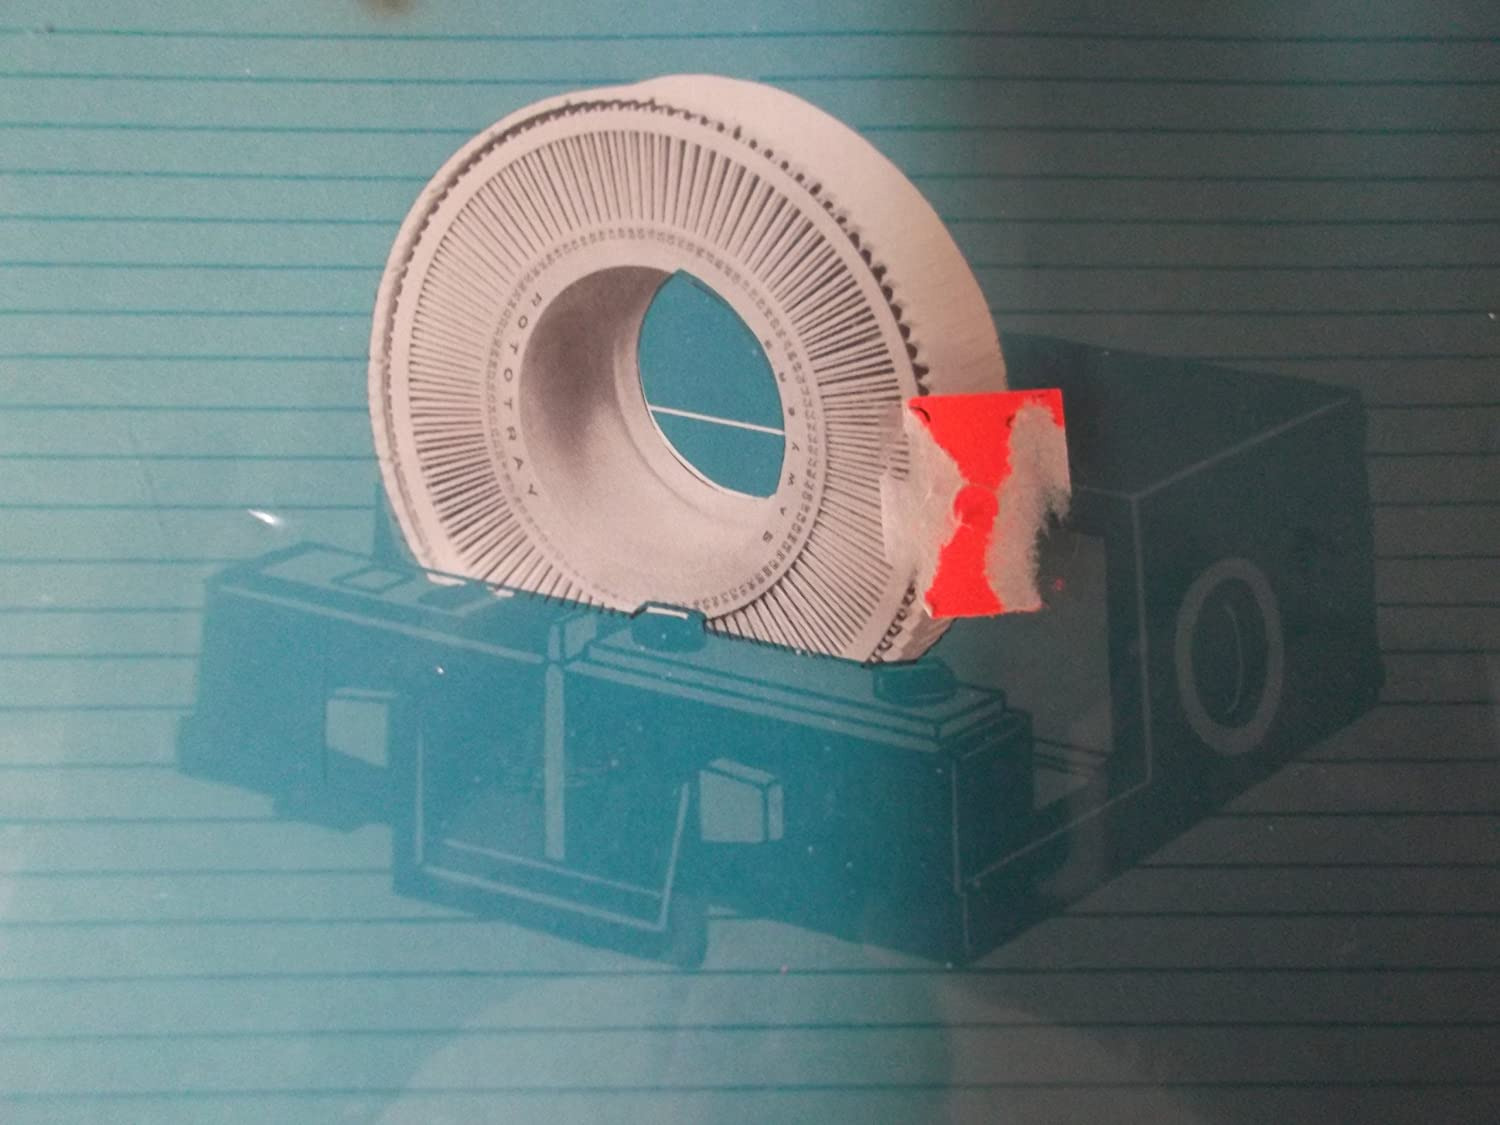 Vintage Kmart Projector Focal Rotary Tray; Holds 100 2x2 Slides